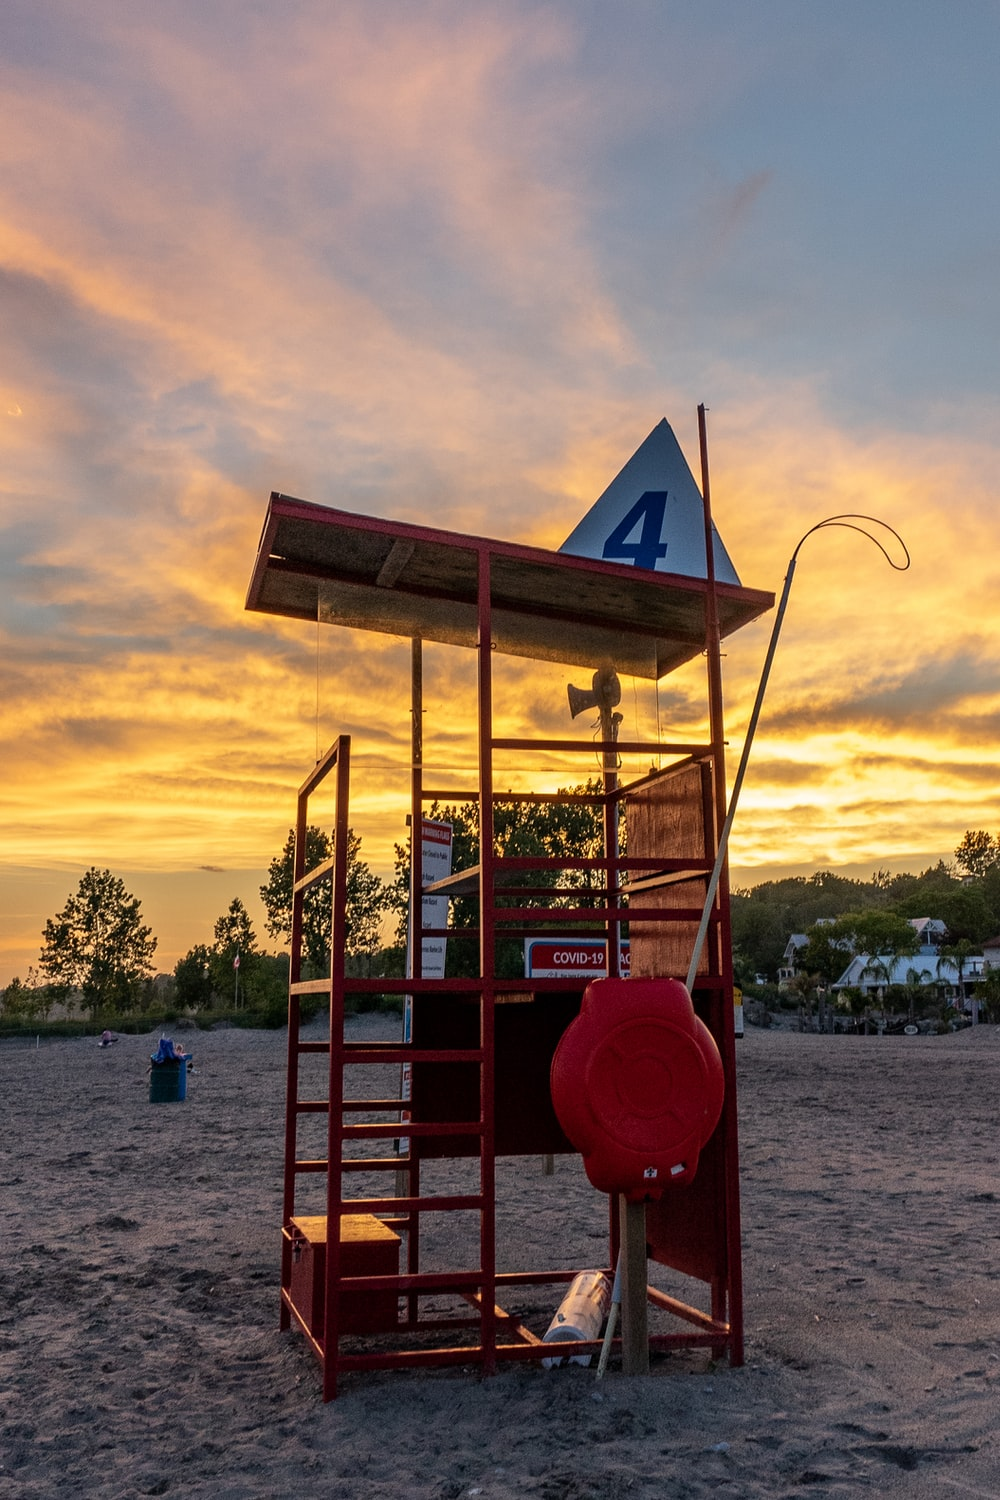 red and brown wooden lifeguard tower near body of water during sunset